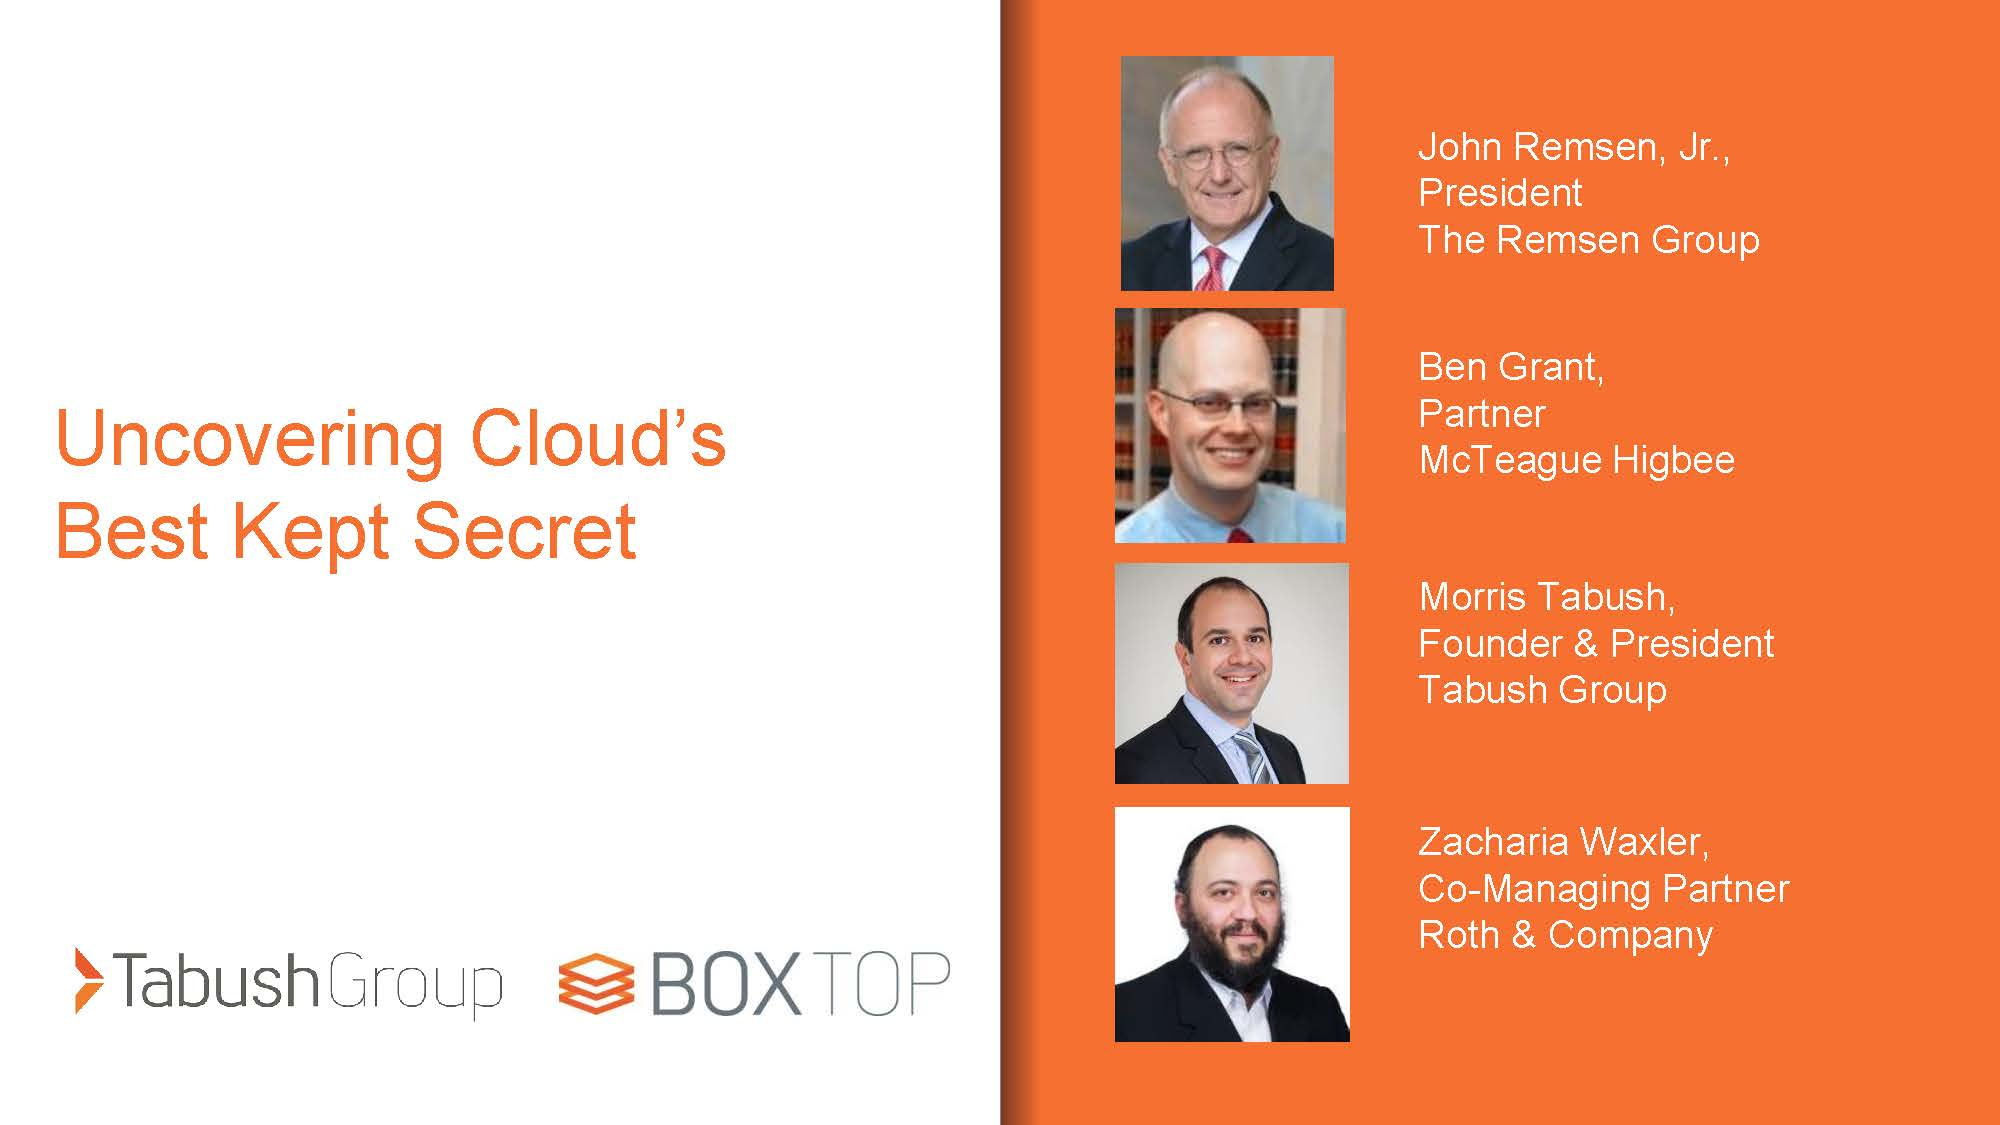 Replay: Uncovering Cloud's Best Kept Secret